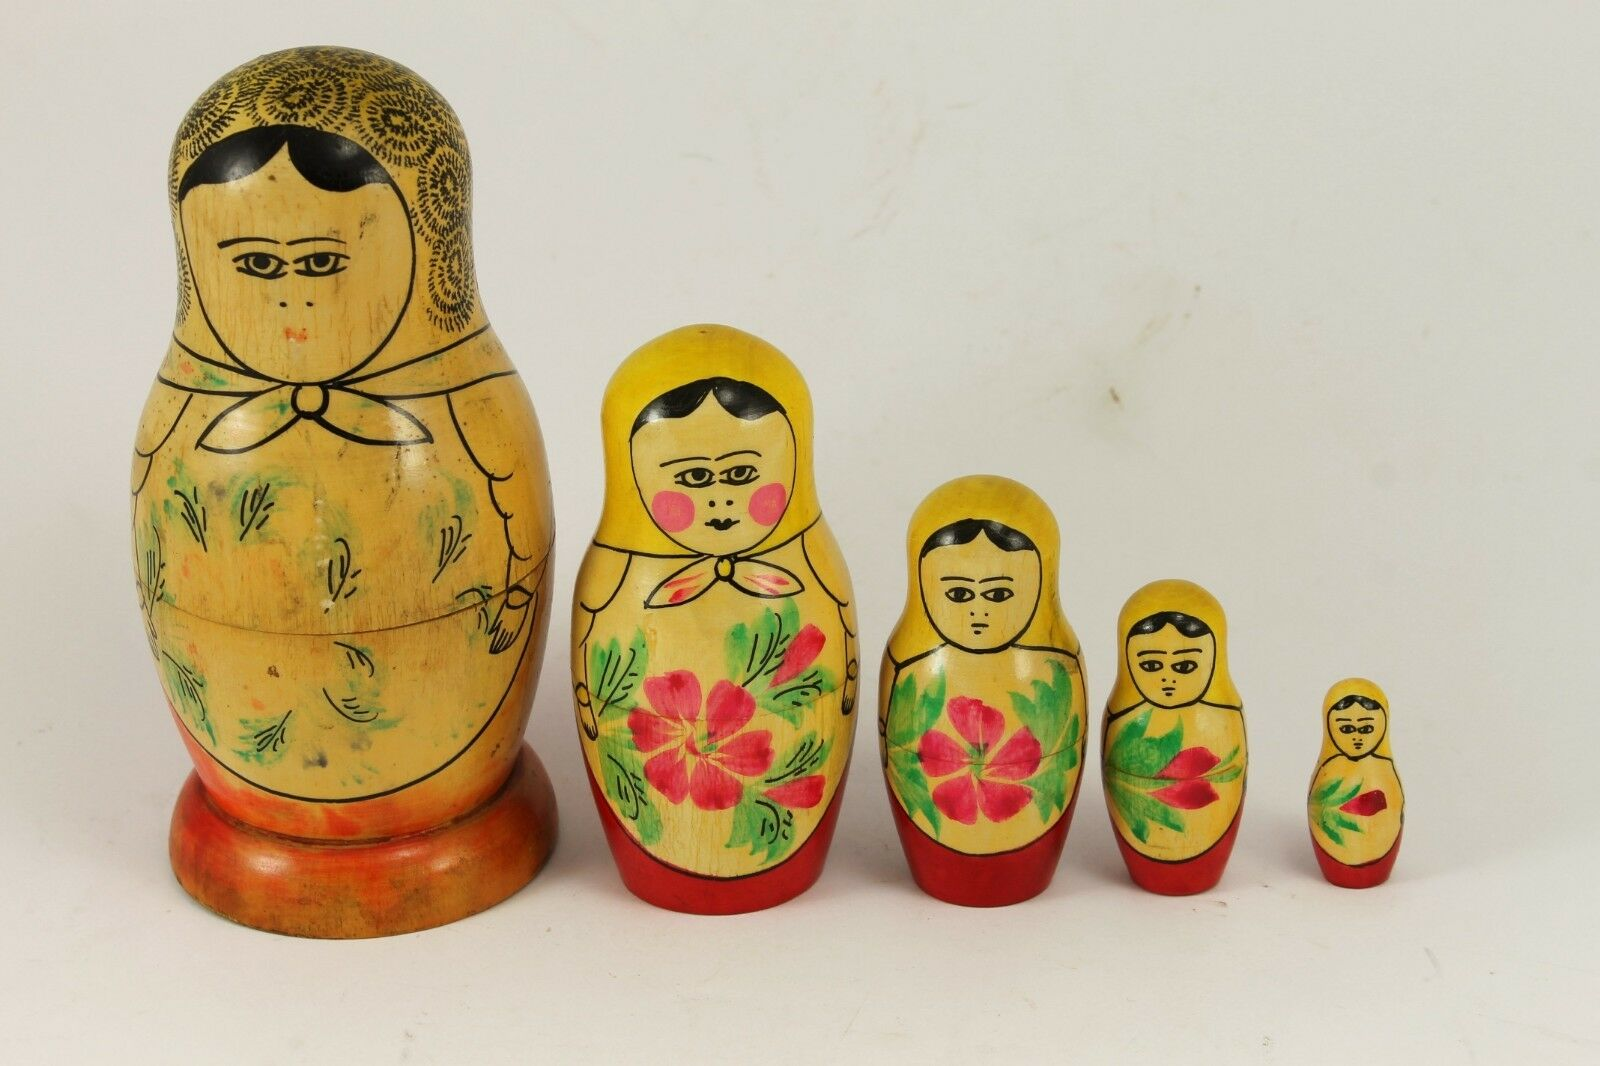 1965 Vintage Russian Wooden Dolls Set MATRYOSHKA Hand Painted